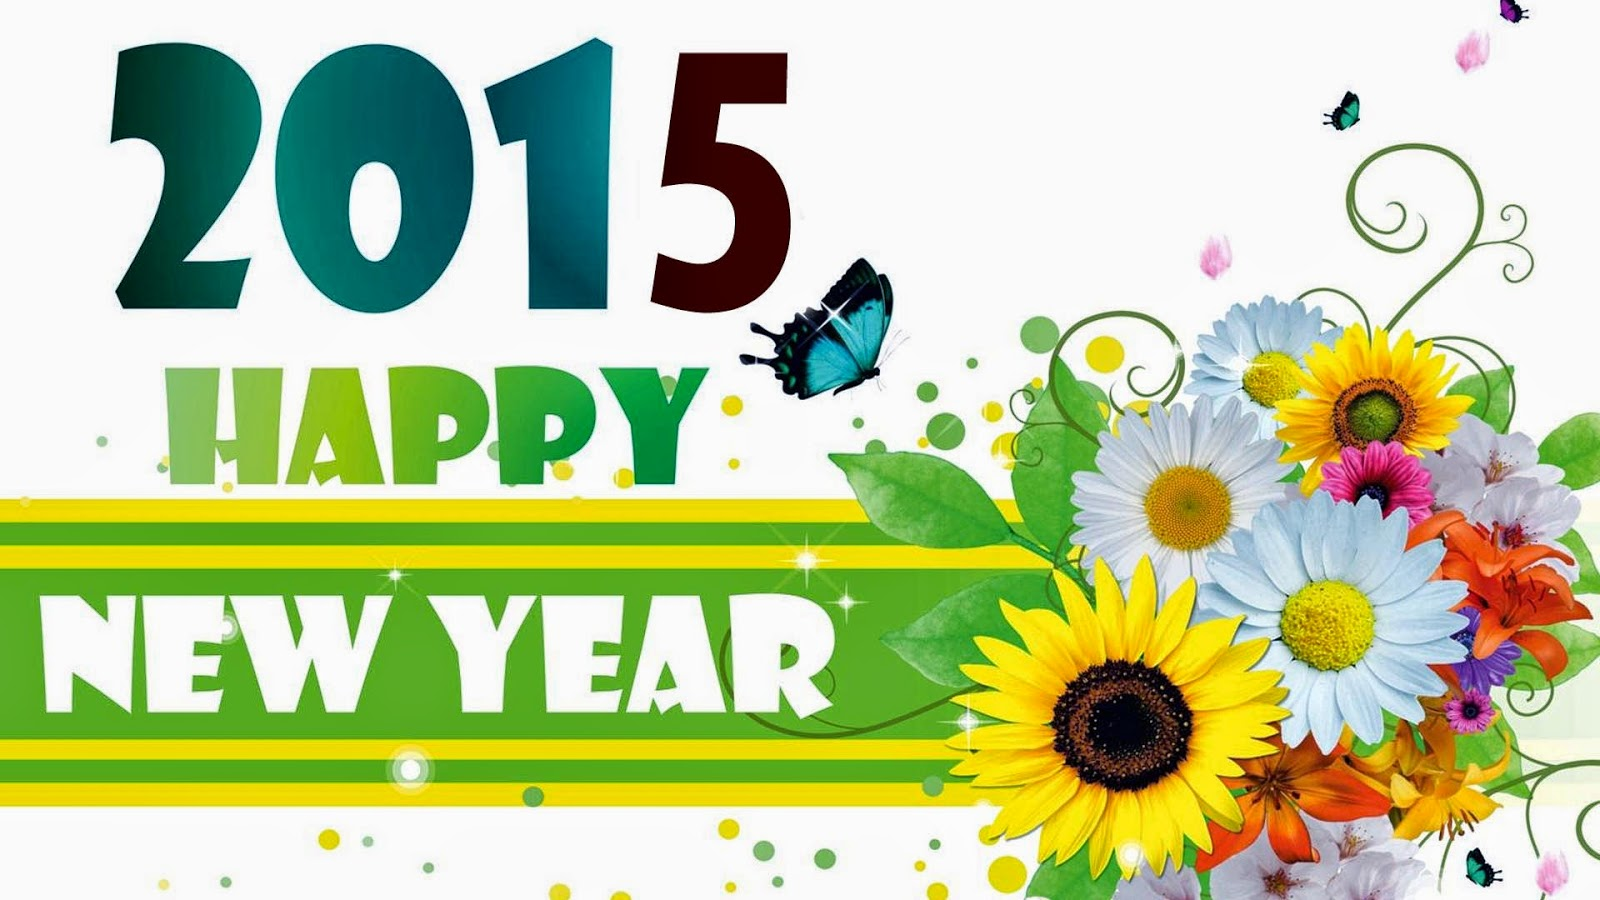 good morning happy new year 2015